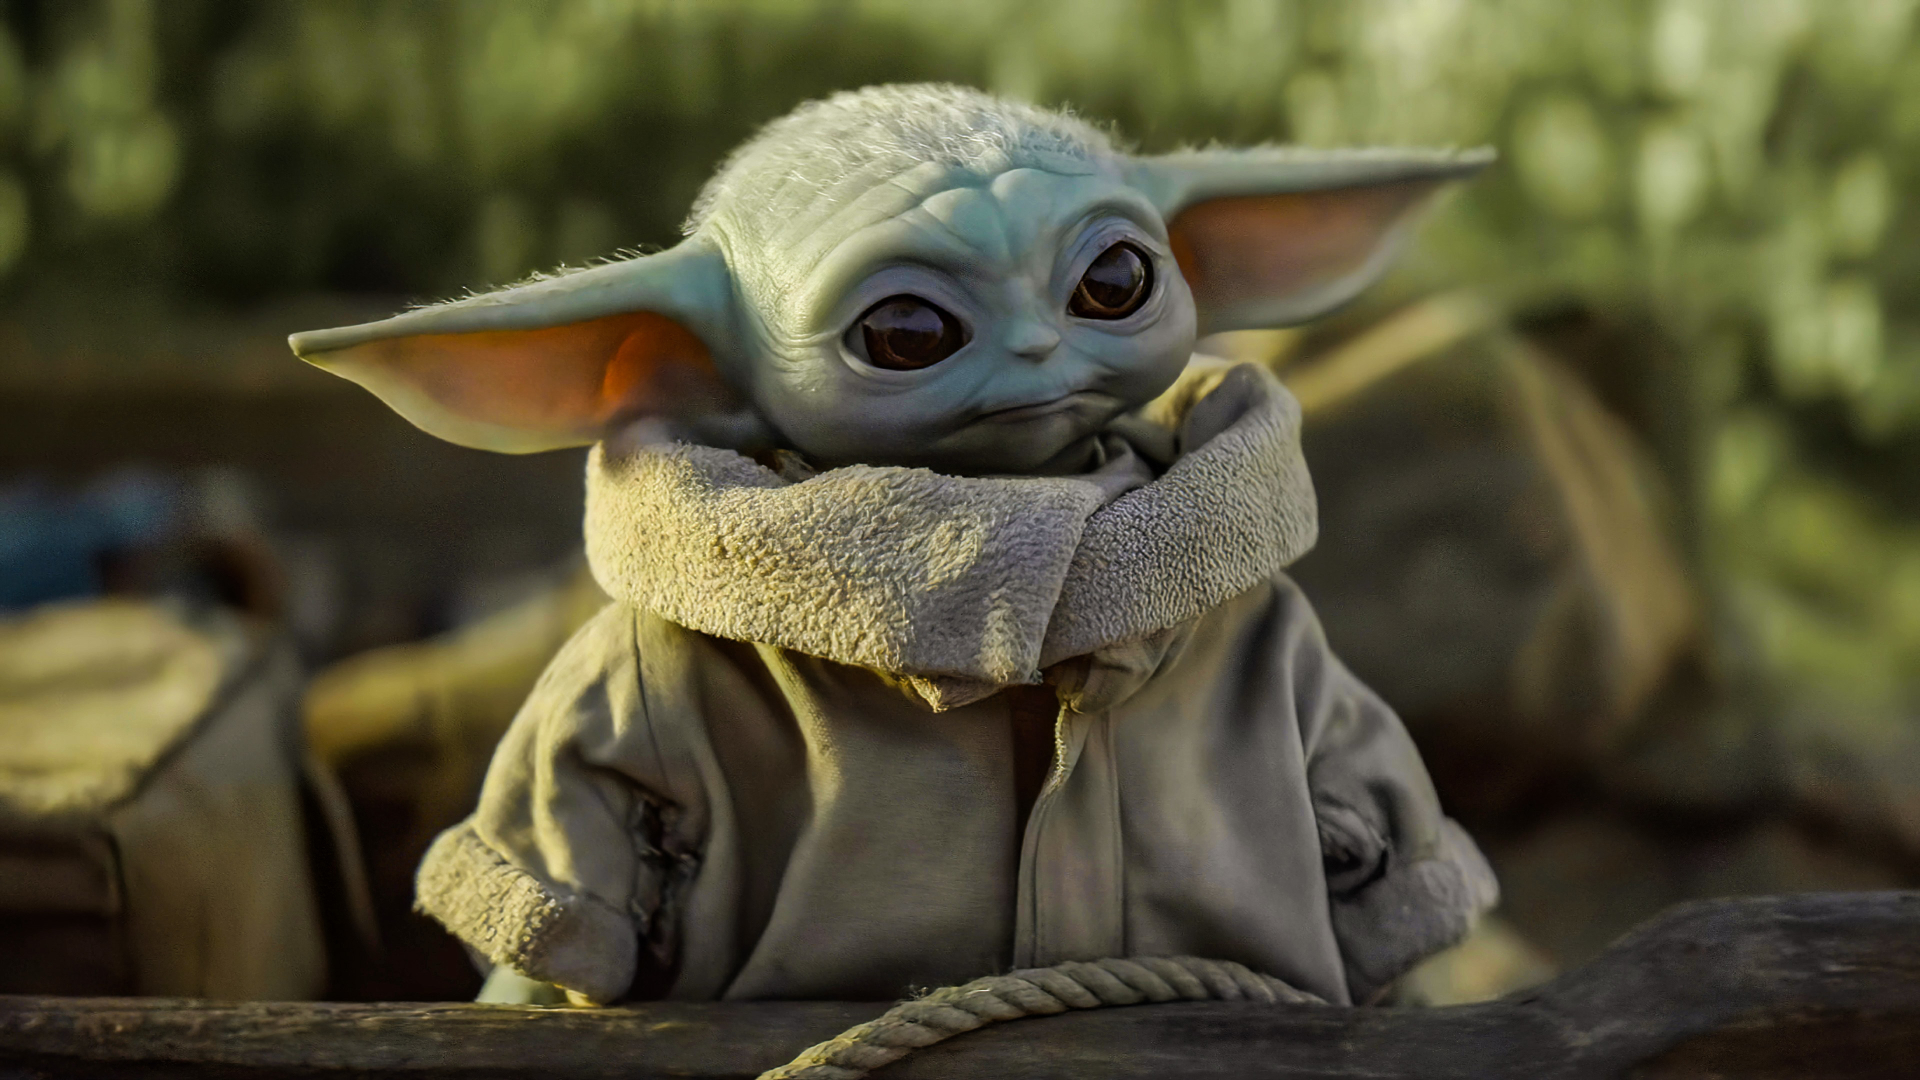 1920x1080 Star Wars Baby Yoda 2 1080p Laptop Full Hd Wallpaper Hd Tv Series 4k Wallpapers Images Photos And Background